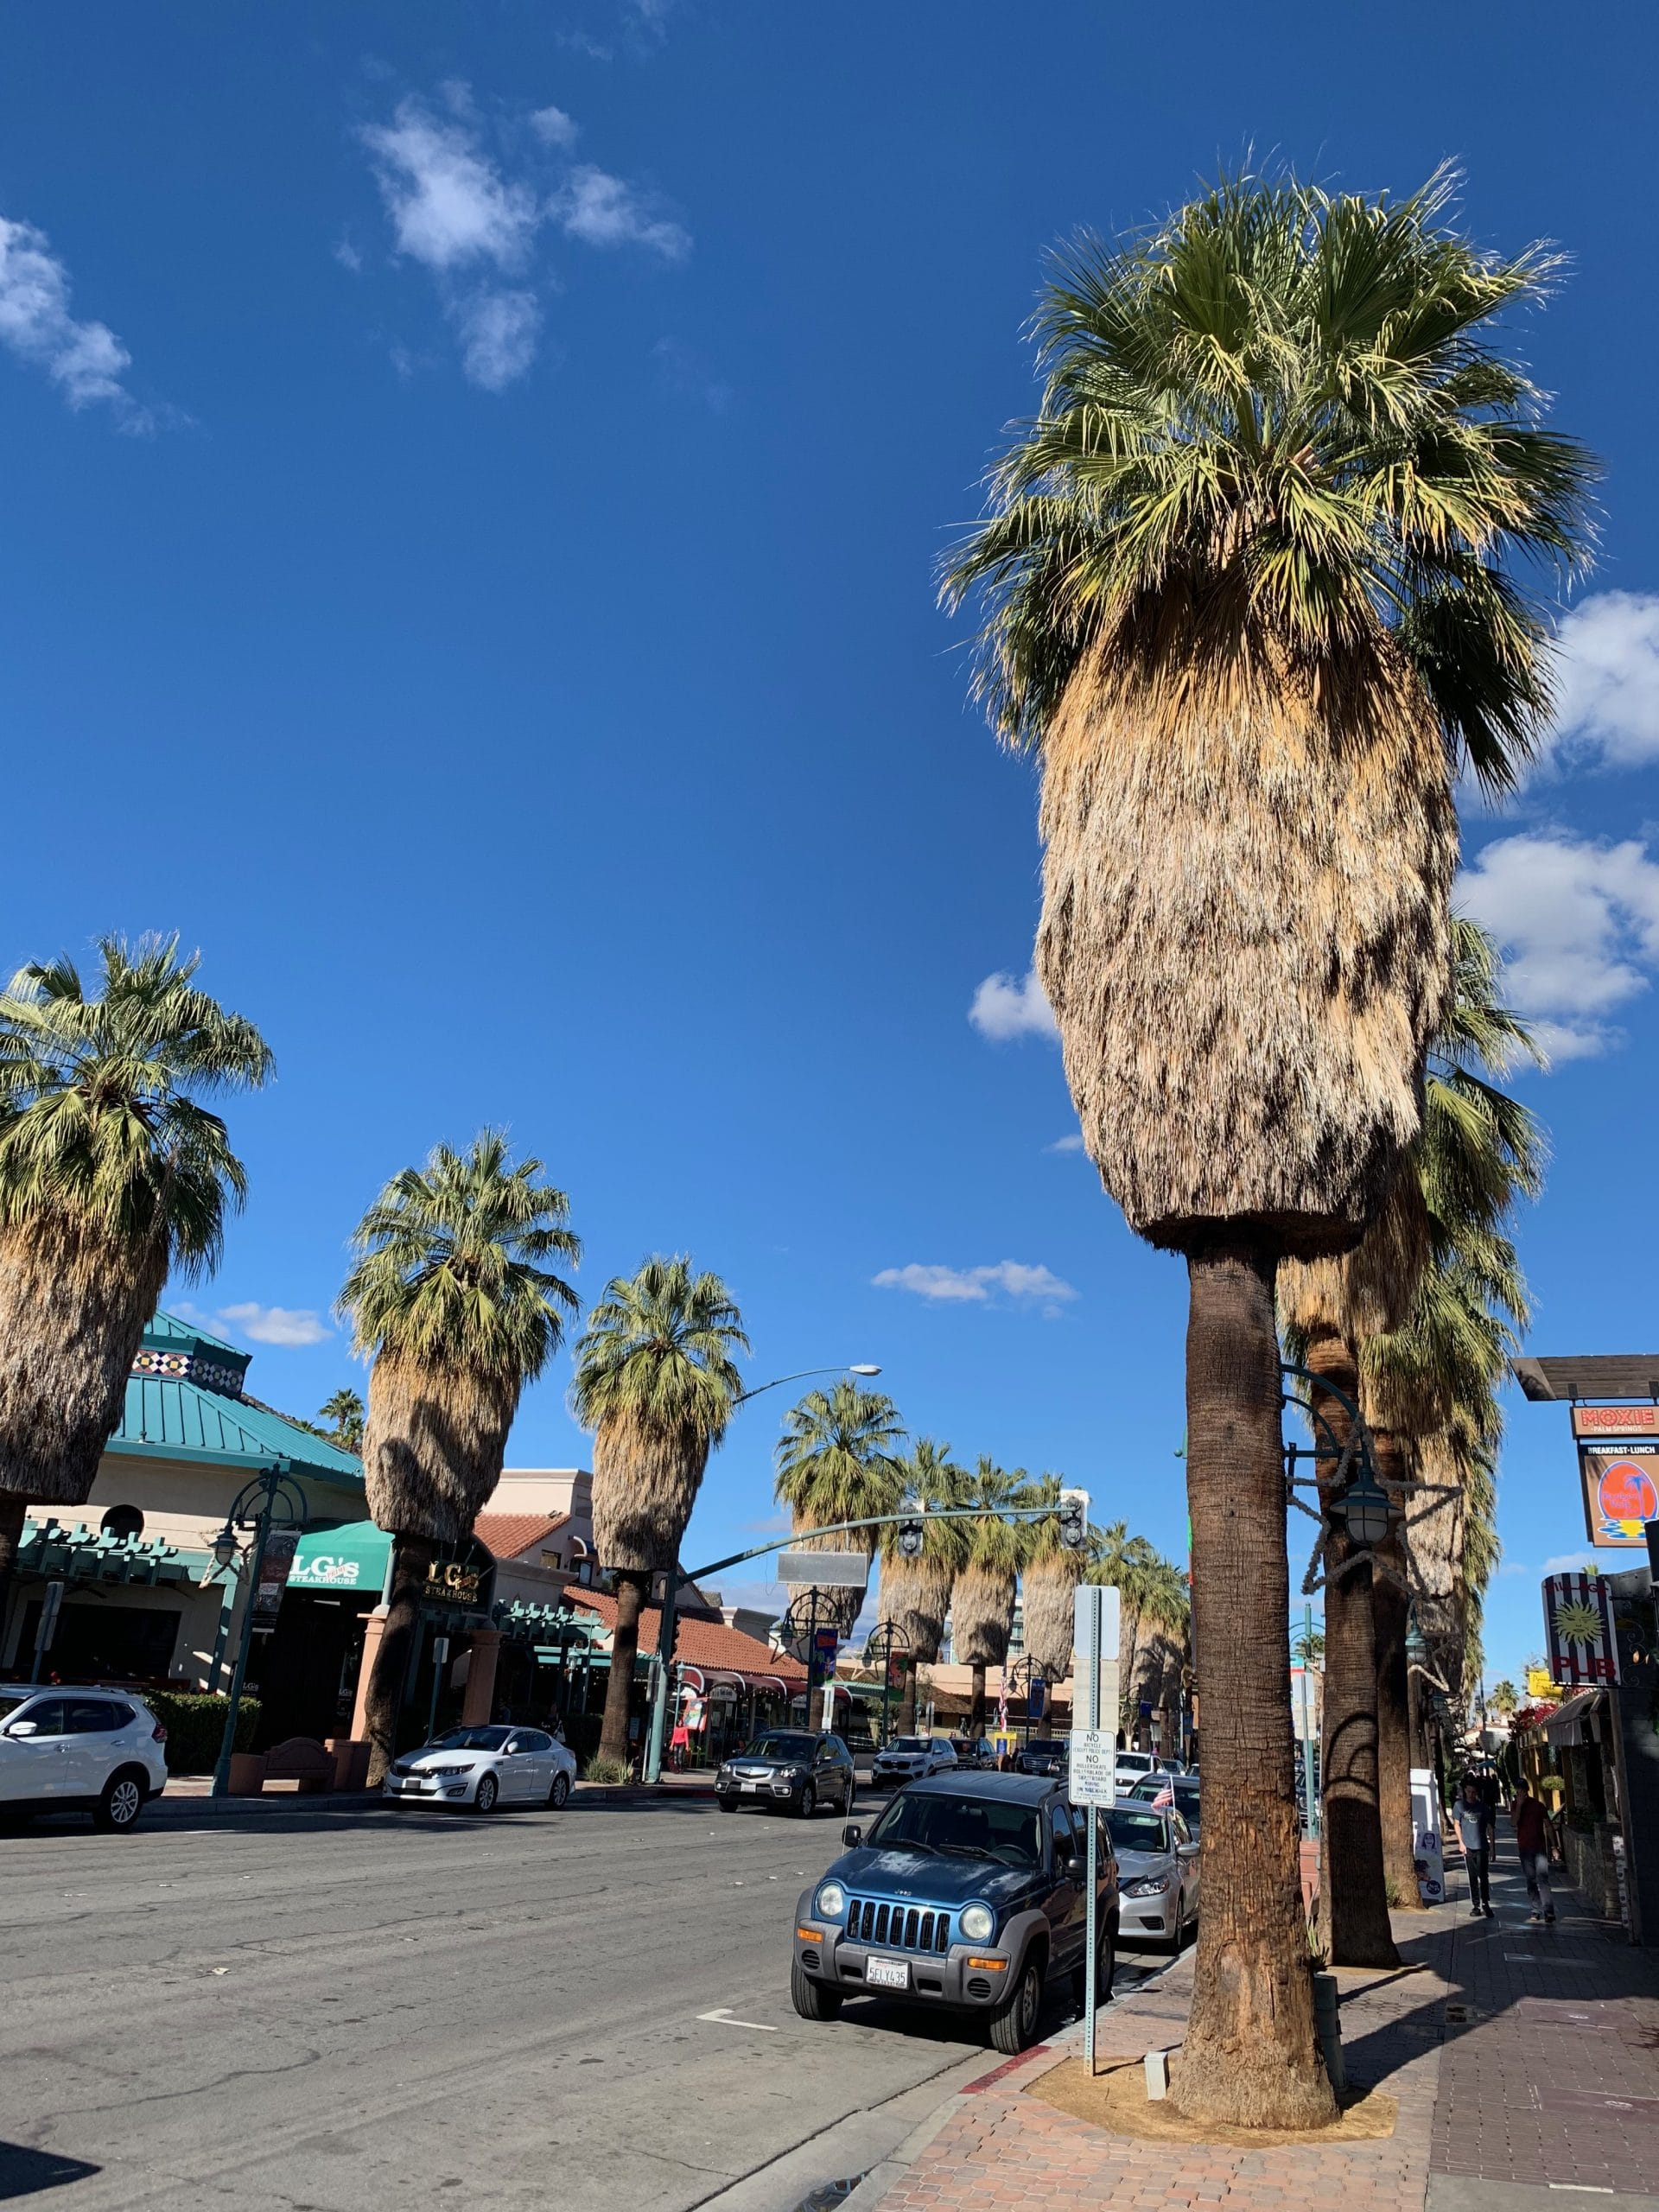 Palm Springs Guide: 8 Steps to an Awesome SoCal Day